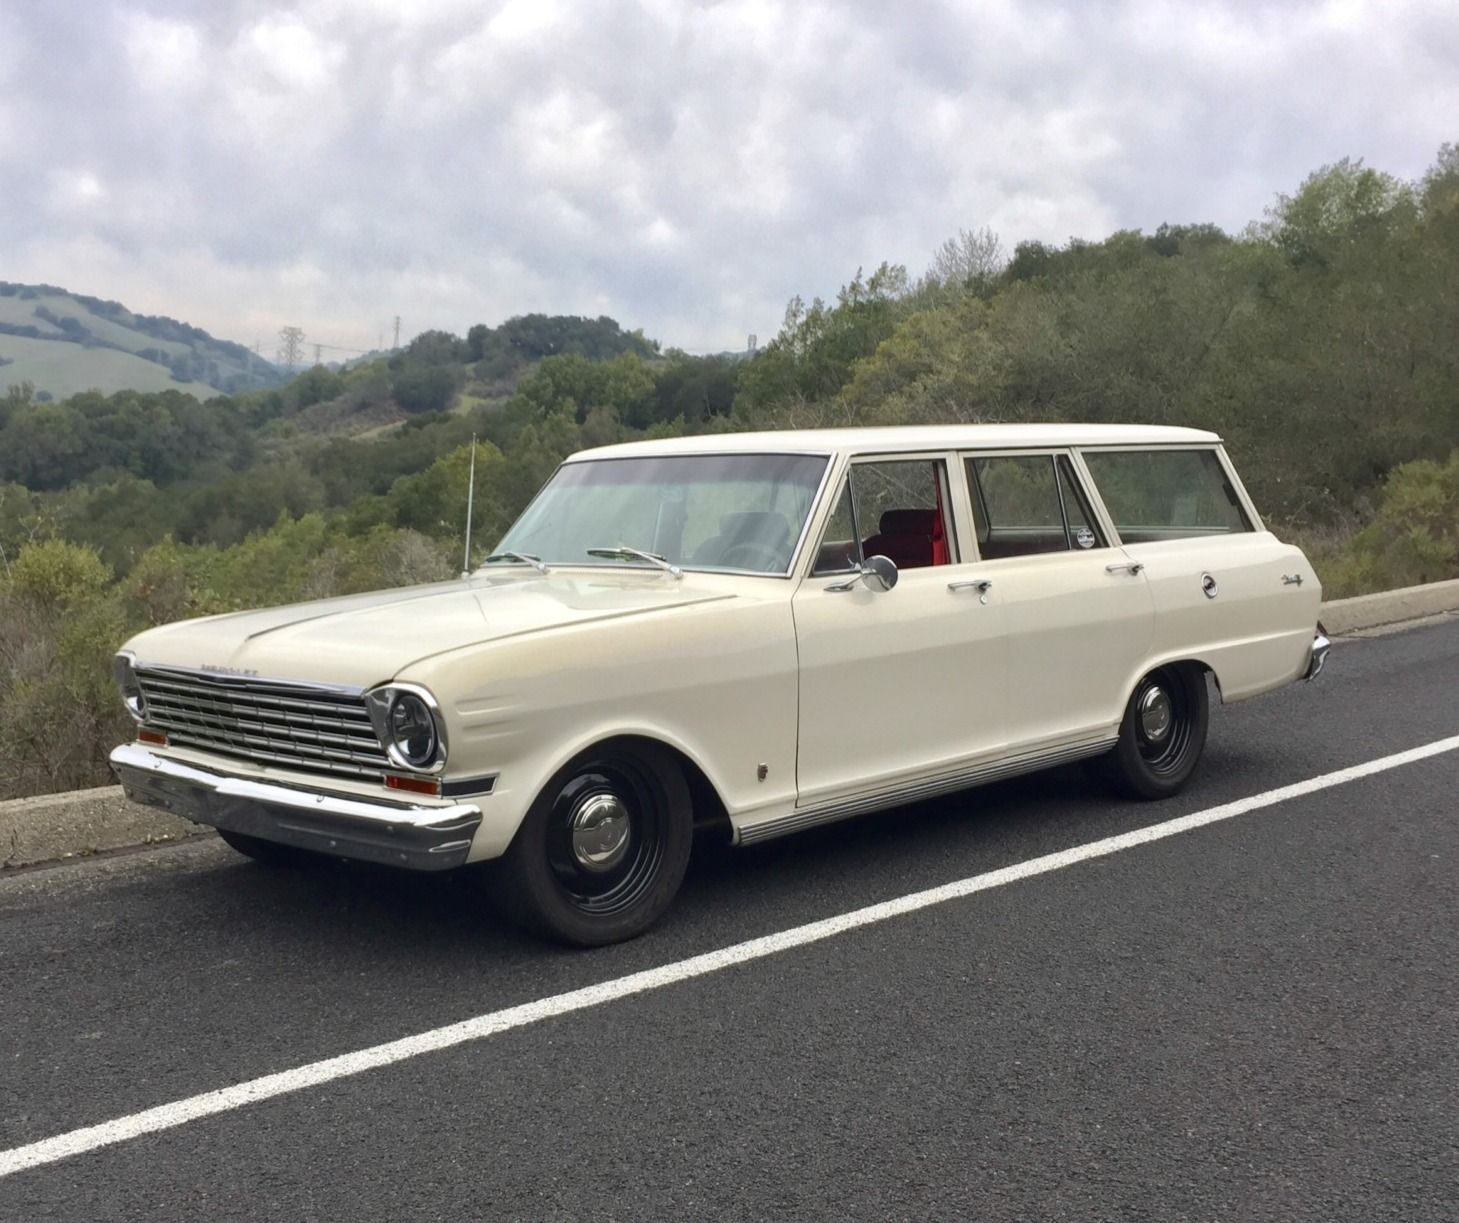 Ls1 Powered 1963 Chevrolet Nova Wagon With Images Chevrolet